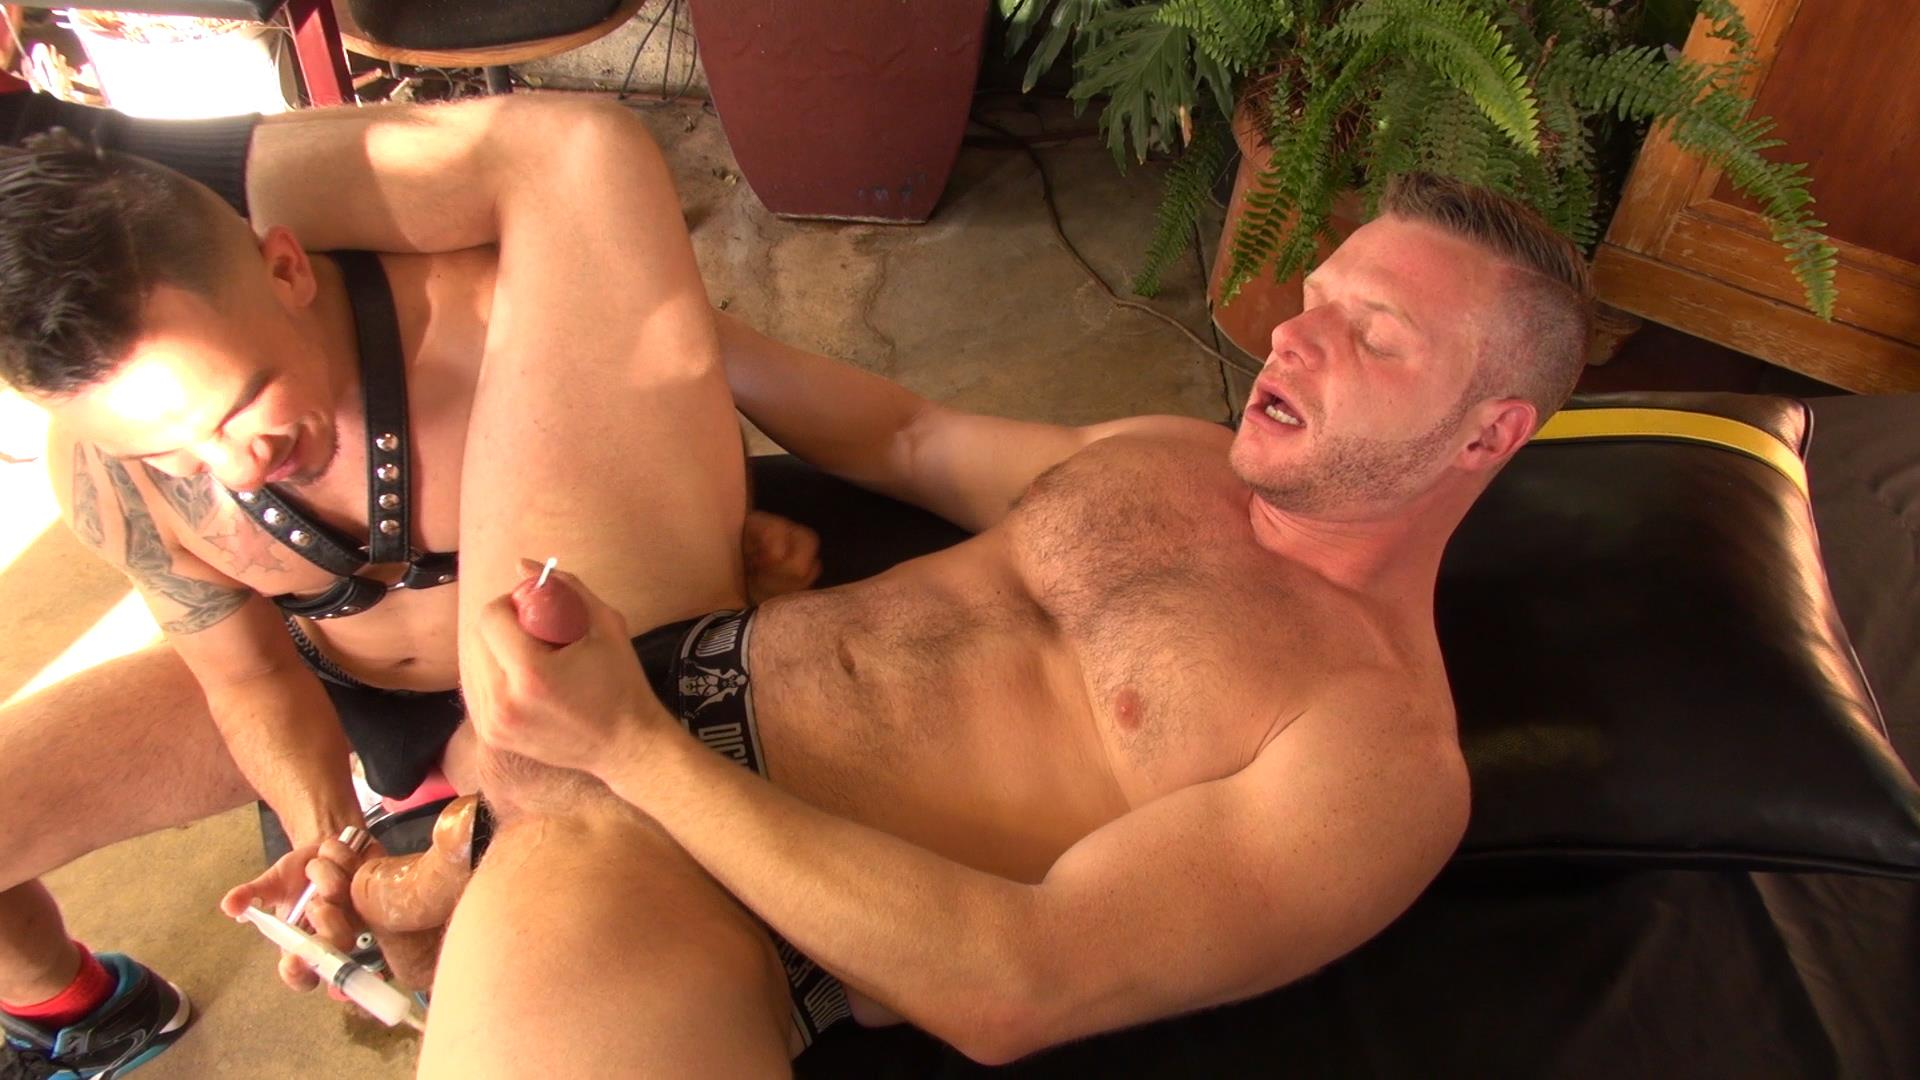 Raw-and-Rough-Brian-Bonds-and-Diego-Tovar-Bareback-Sex-and-Fisting-08 Brian Bonds Gets Fisted!